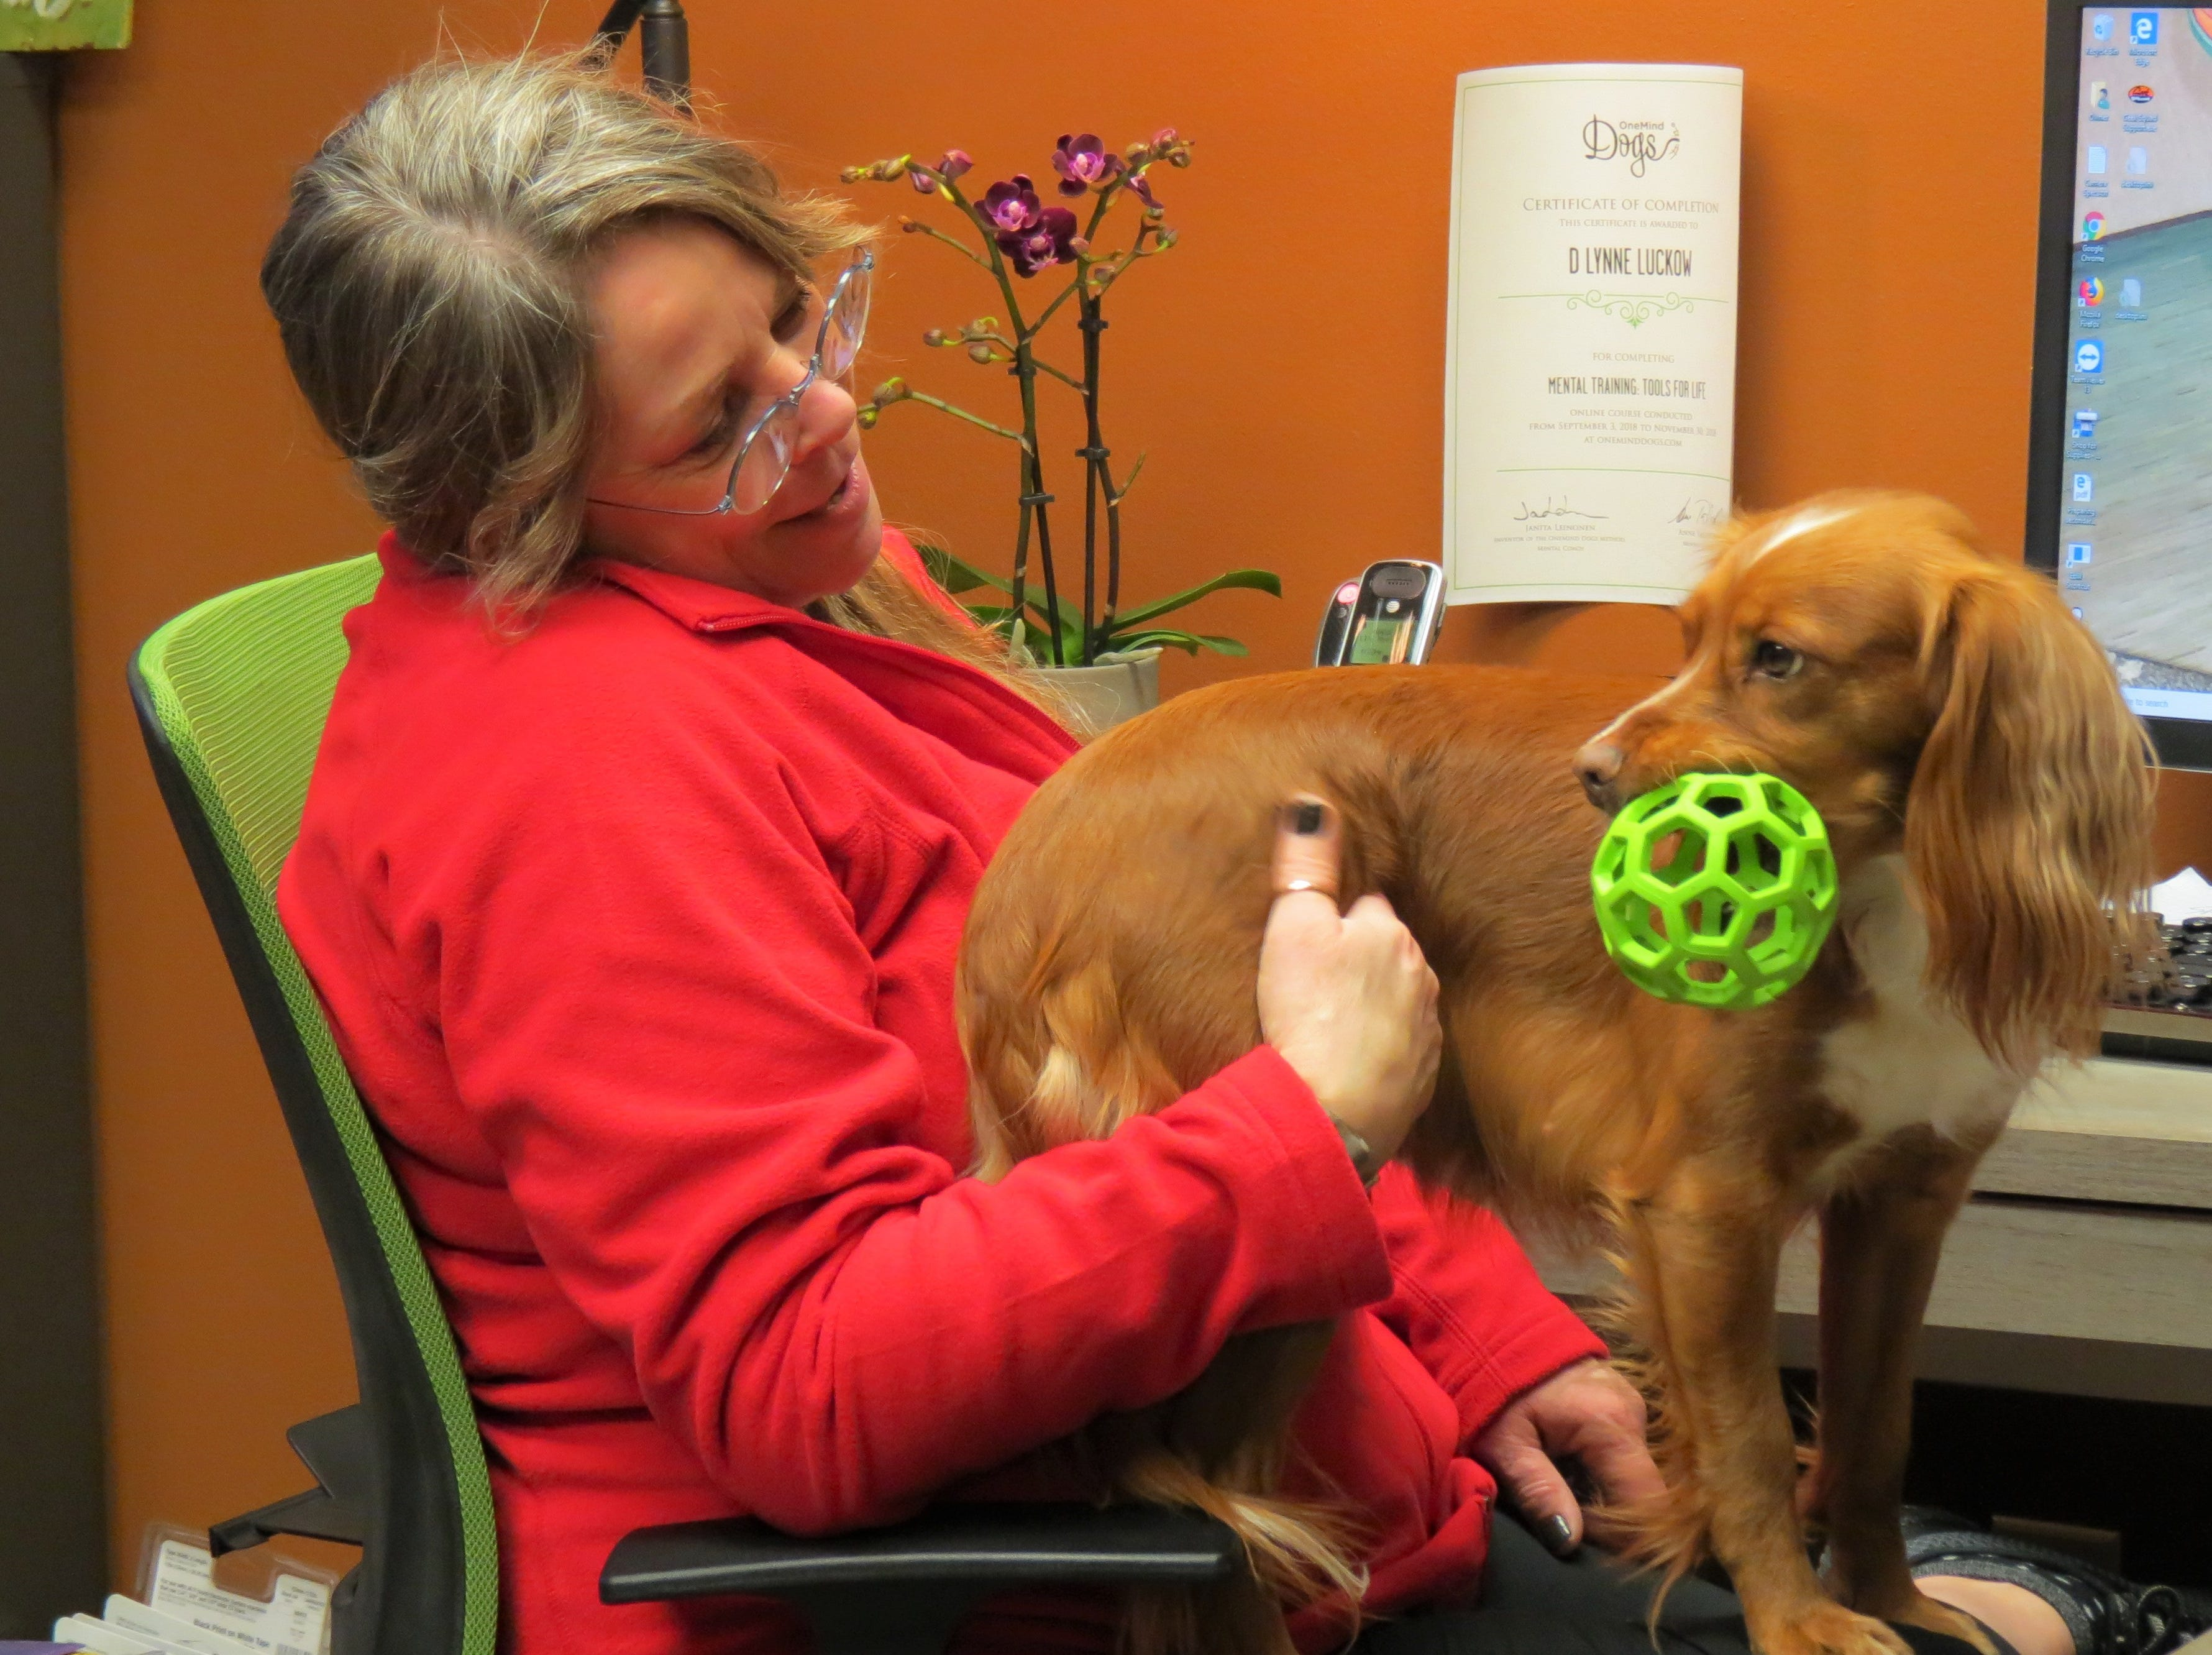 Redline training center owner D. Lynne Luckow plays with her dog Snap in her office.